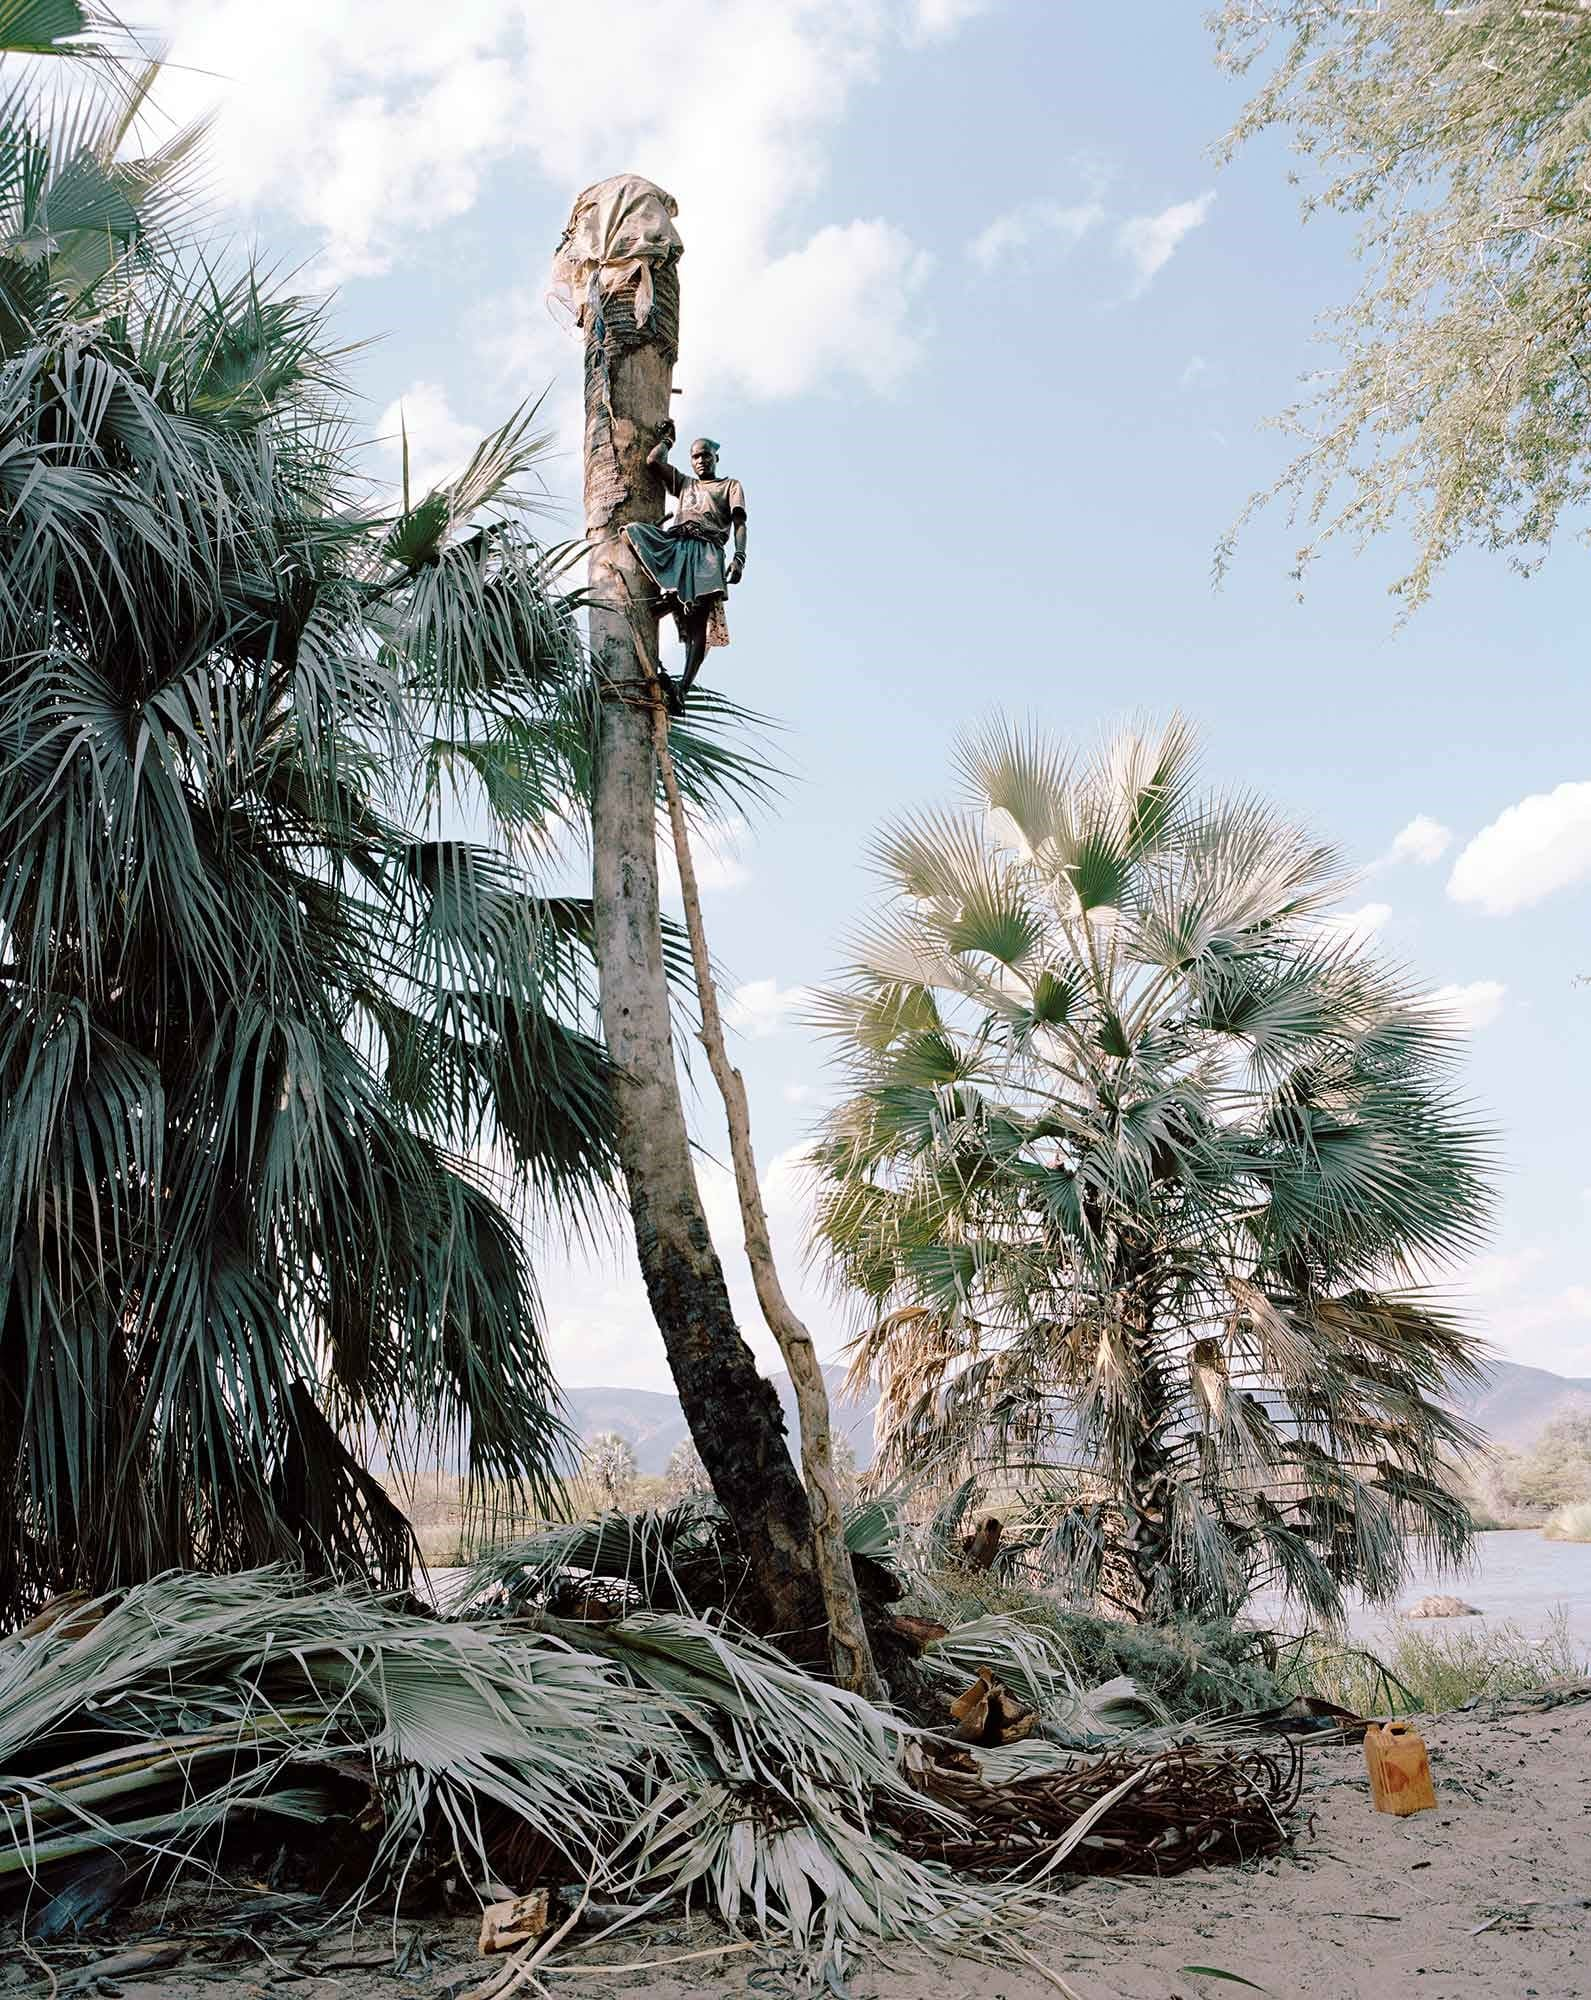 Mutjope Kavari, Wine Palm Collector by Kyle Weeks